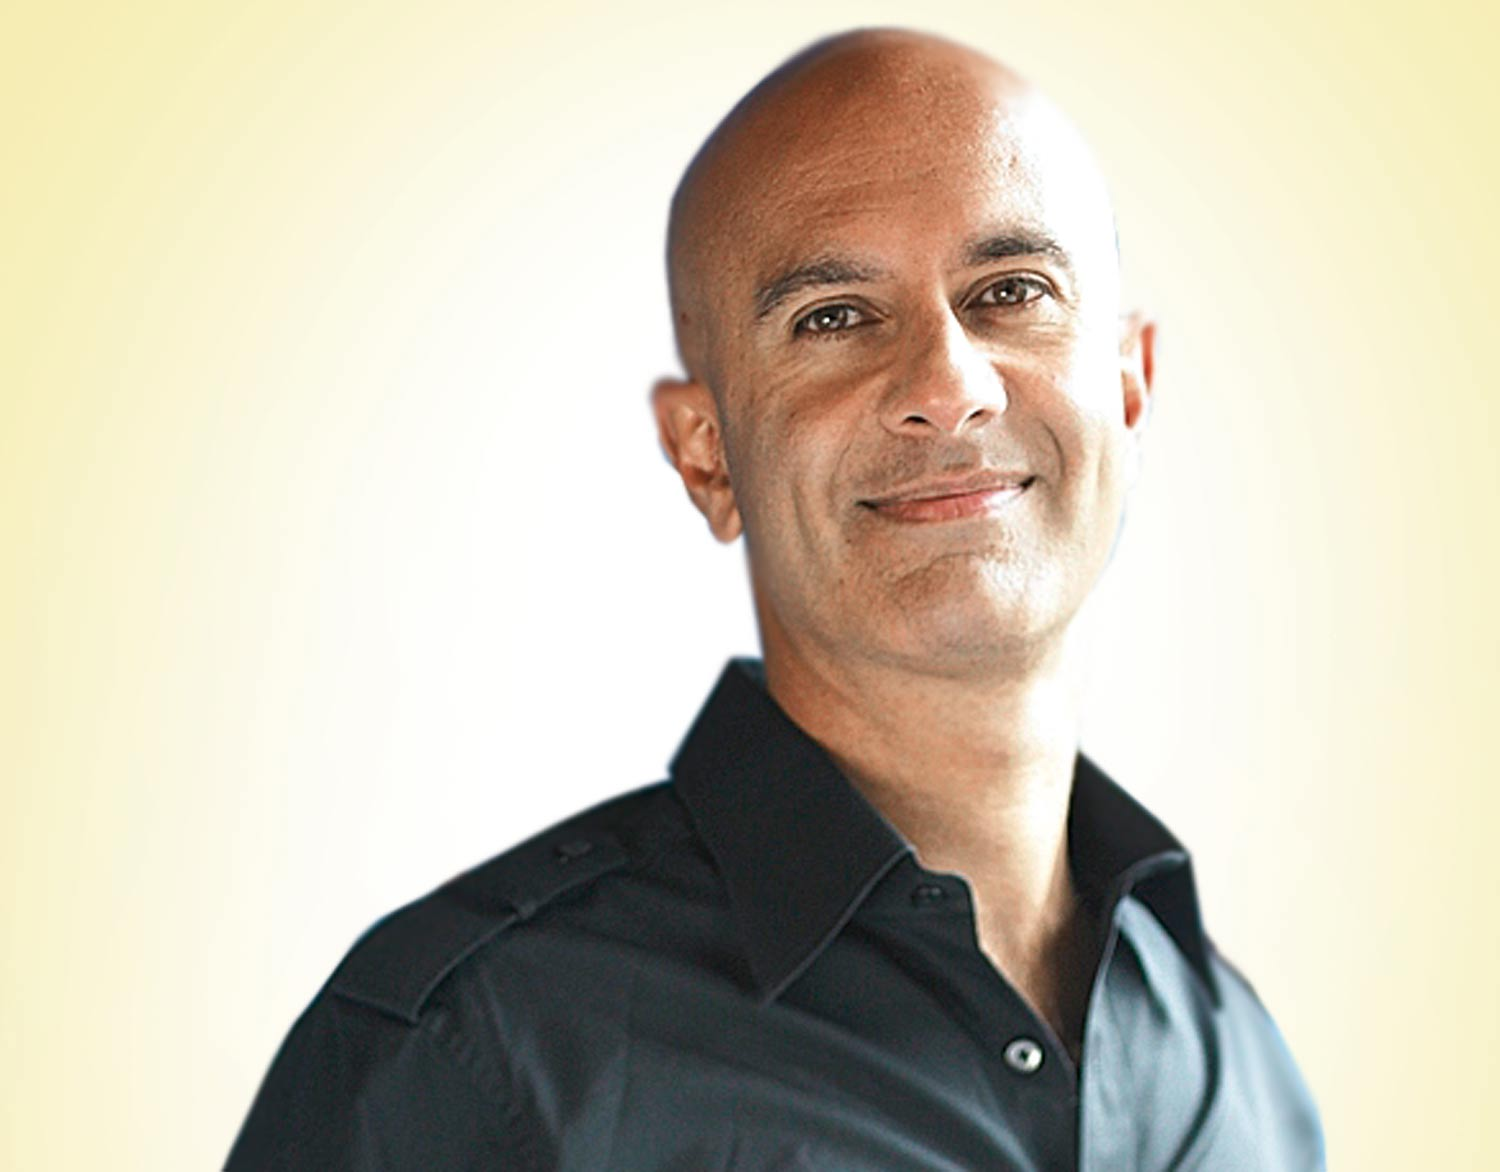 Quot It S About Your Attitude Quot Robin Sharma Complete Wellbeing